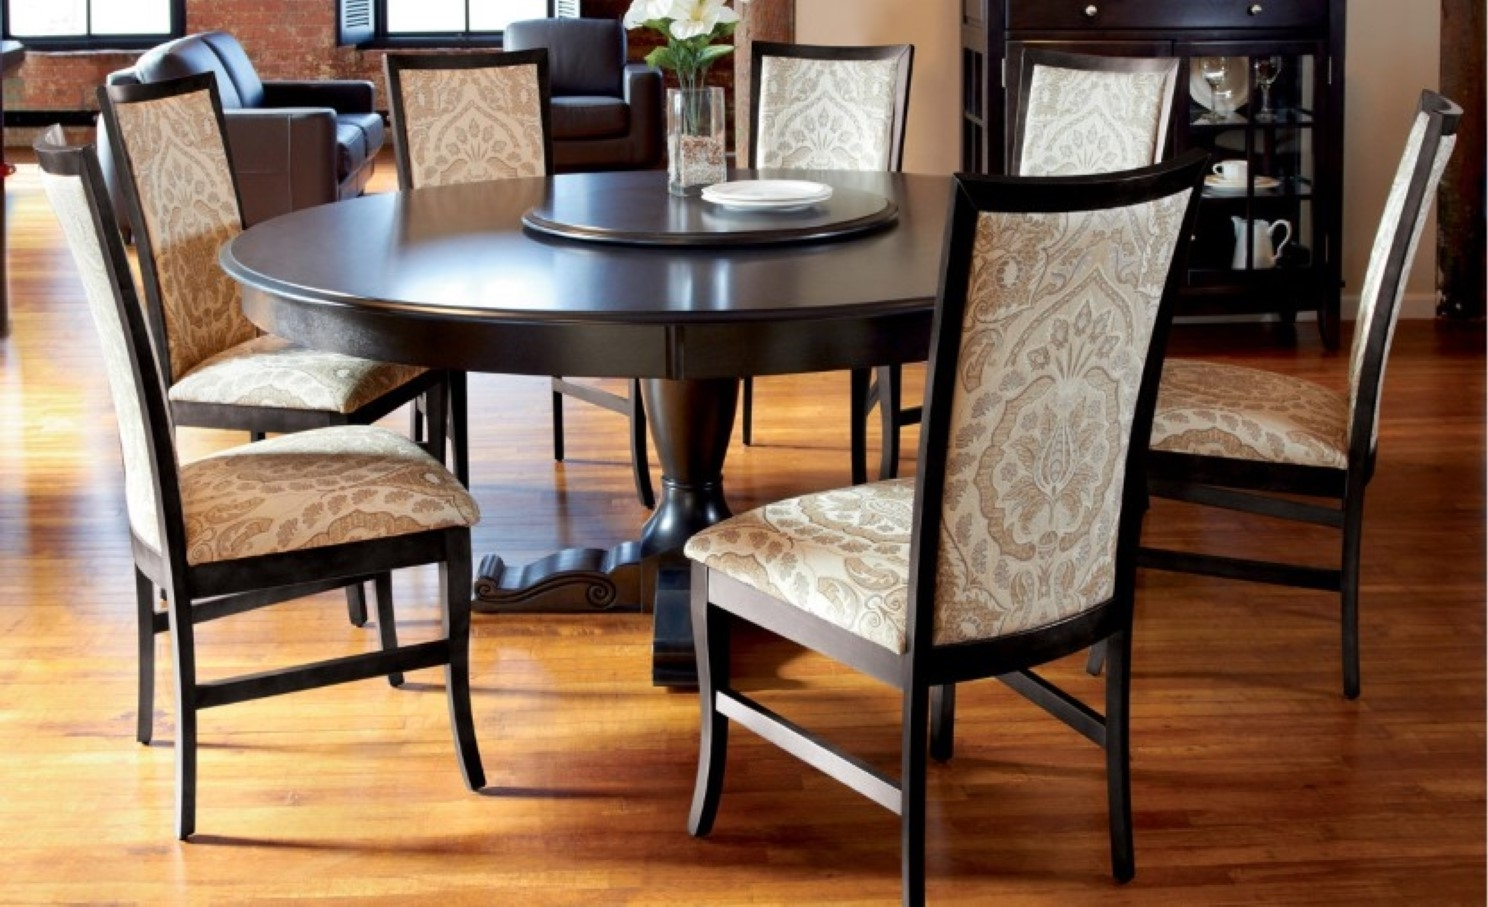 2018 Dining Room Large Solid Wood Dining Room Table Dining Chairs For Pertaining To Dark Wood Dining Room Furniture (Gallery 12 of 25)